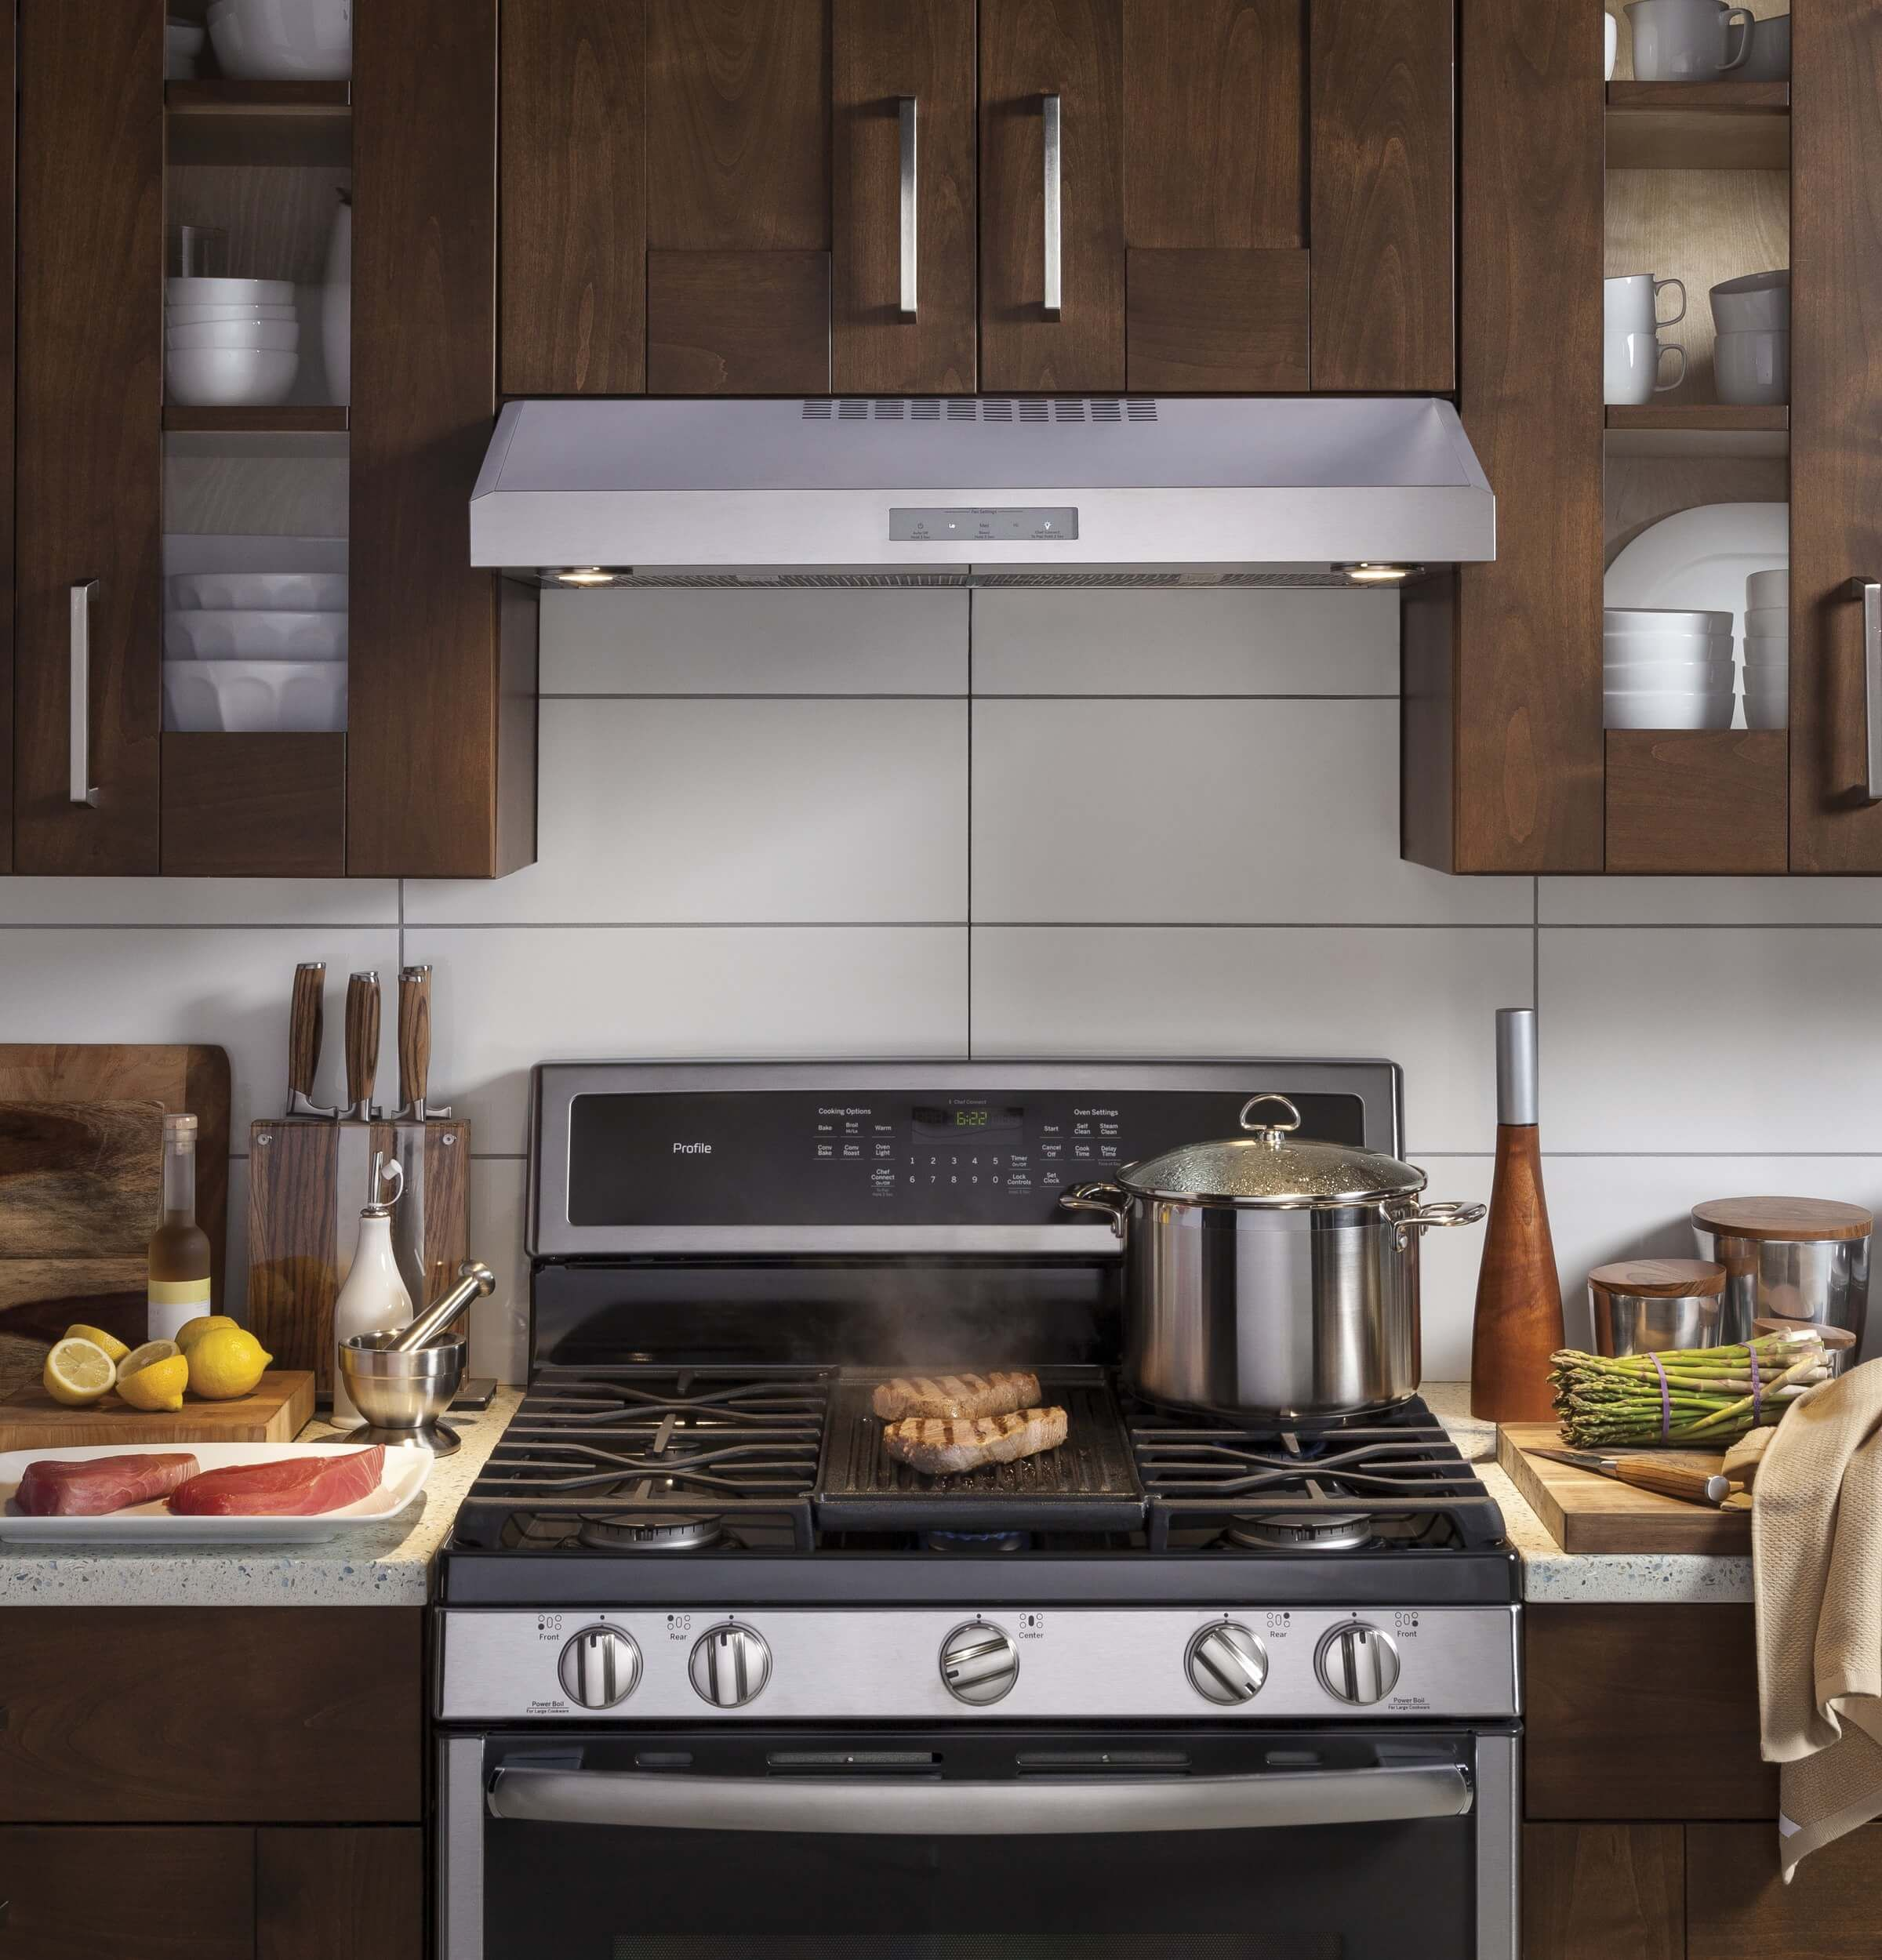 Picking Out The Perfect Appliances At Best Buy With The Best Selection Kitchen Range Hood Stove Range Hood Kitchen Hood Design